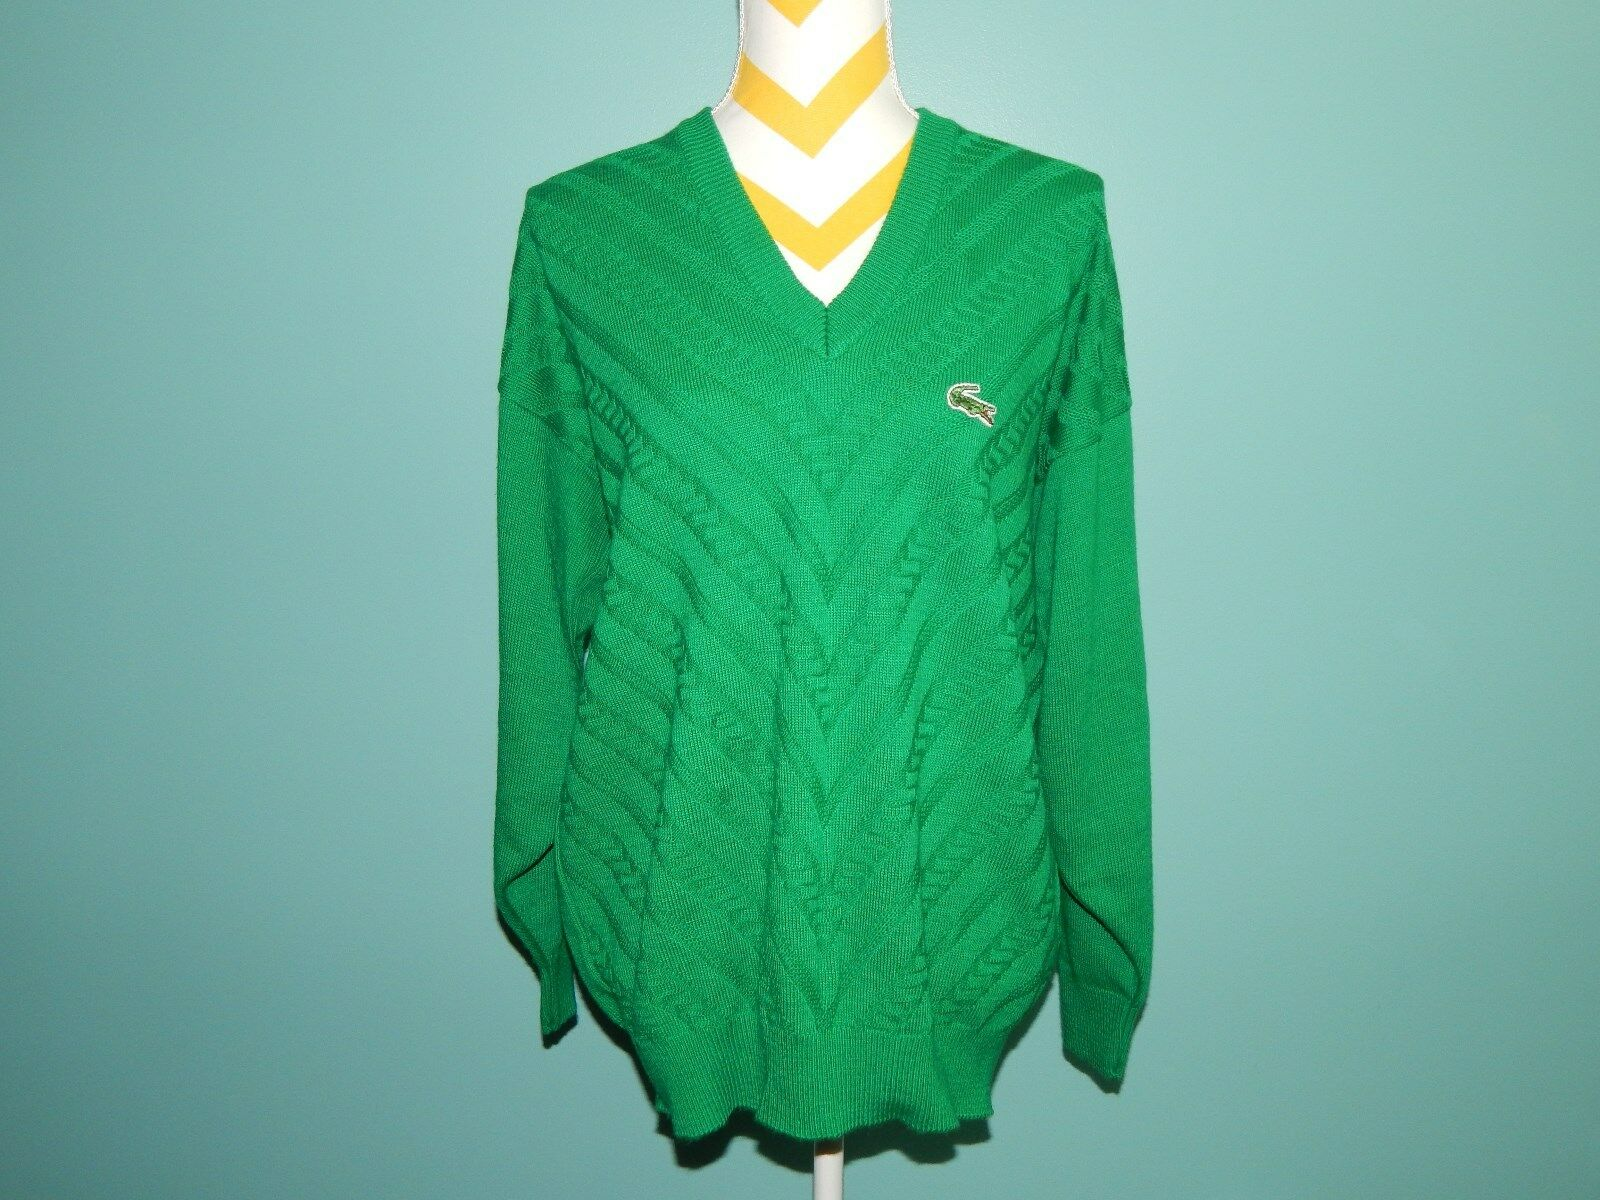 VTG LACOSTE Green Gator Cable Knit Jumper Sweater Chemise Made in France sz L XL